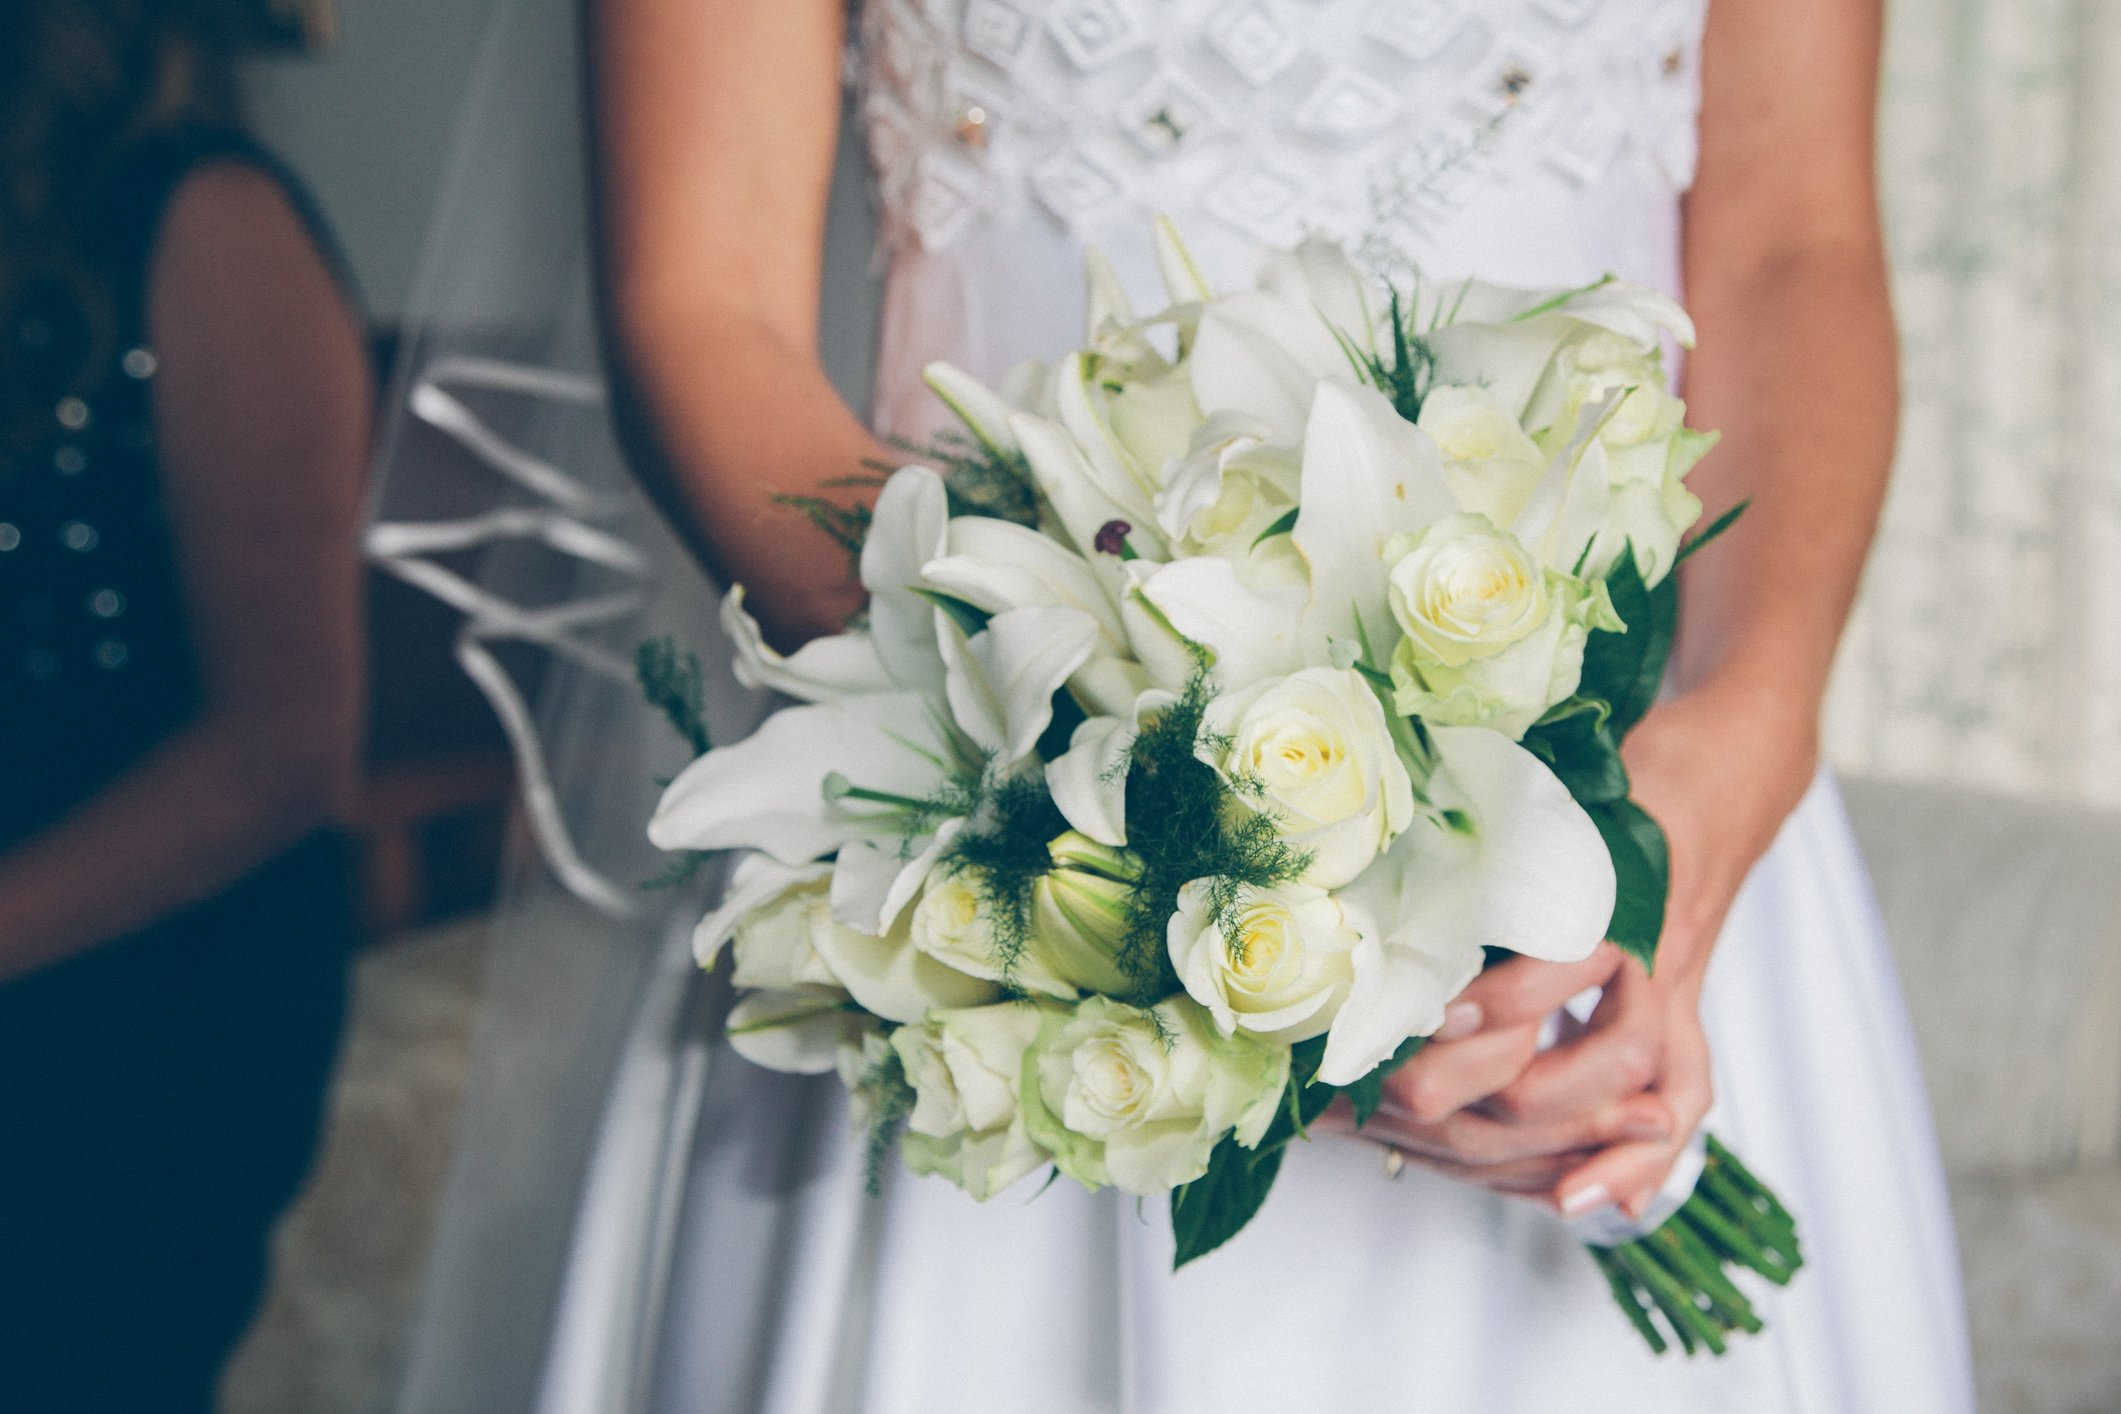 Bride holding a bouquet.   Photo: Getty Images